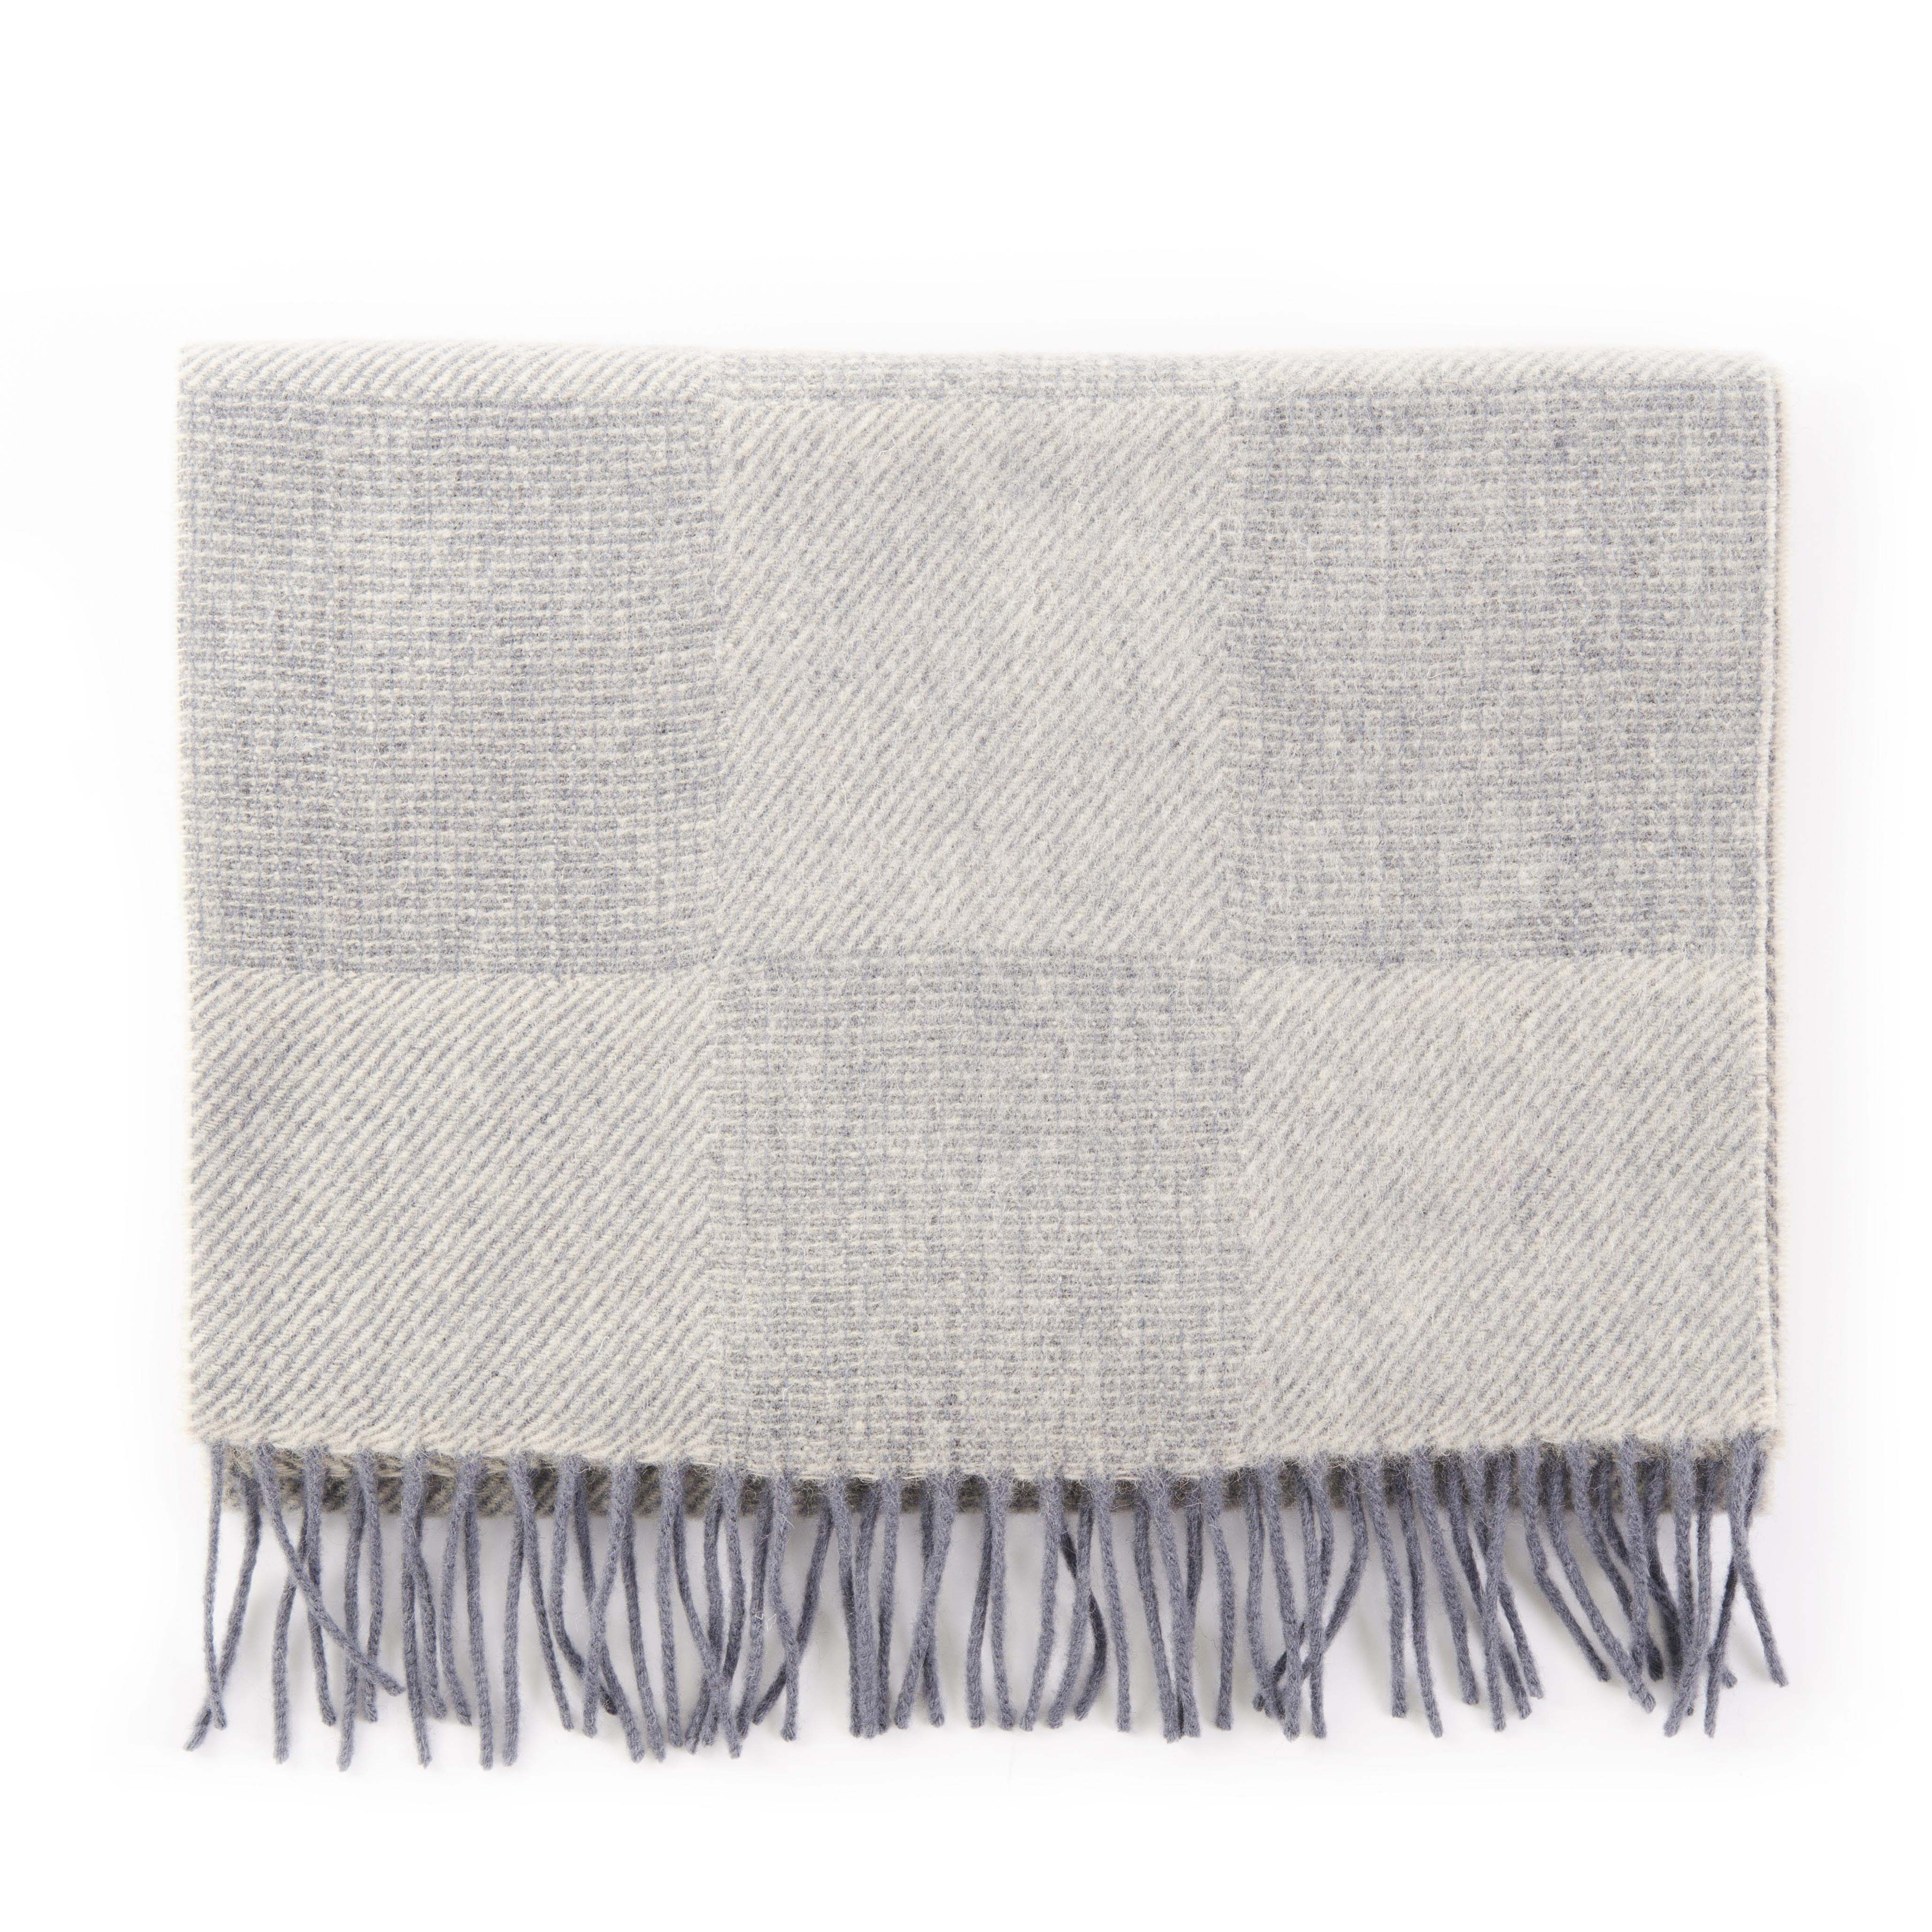 Scarf checked silver grey, soft Mongolian virgin wool